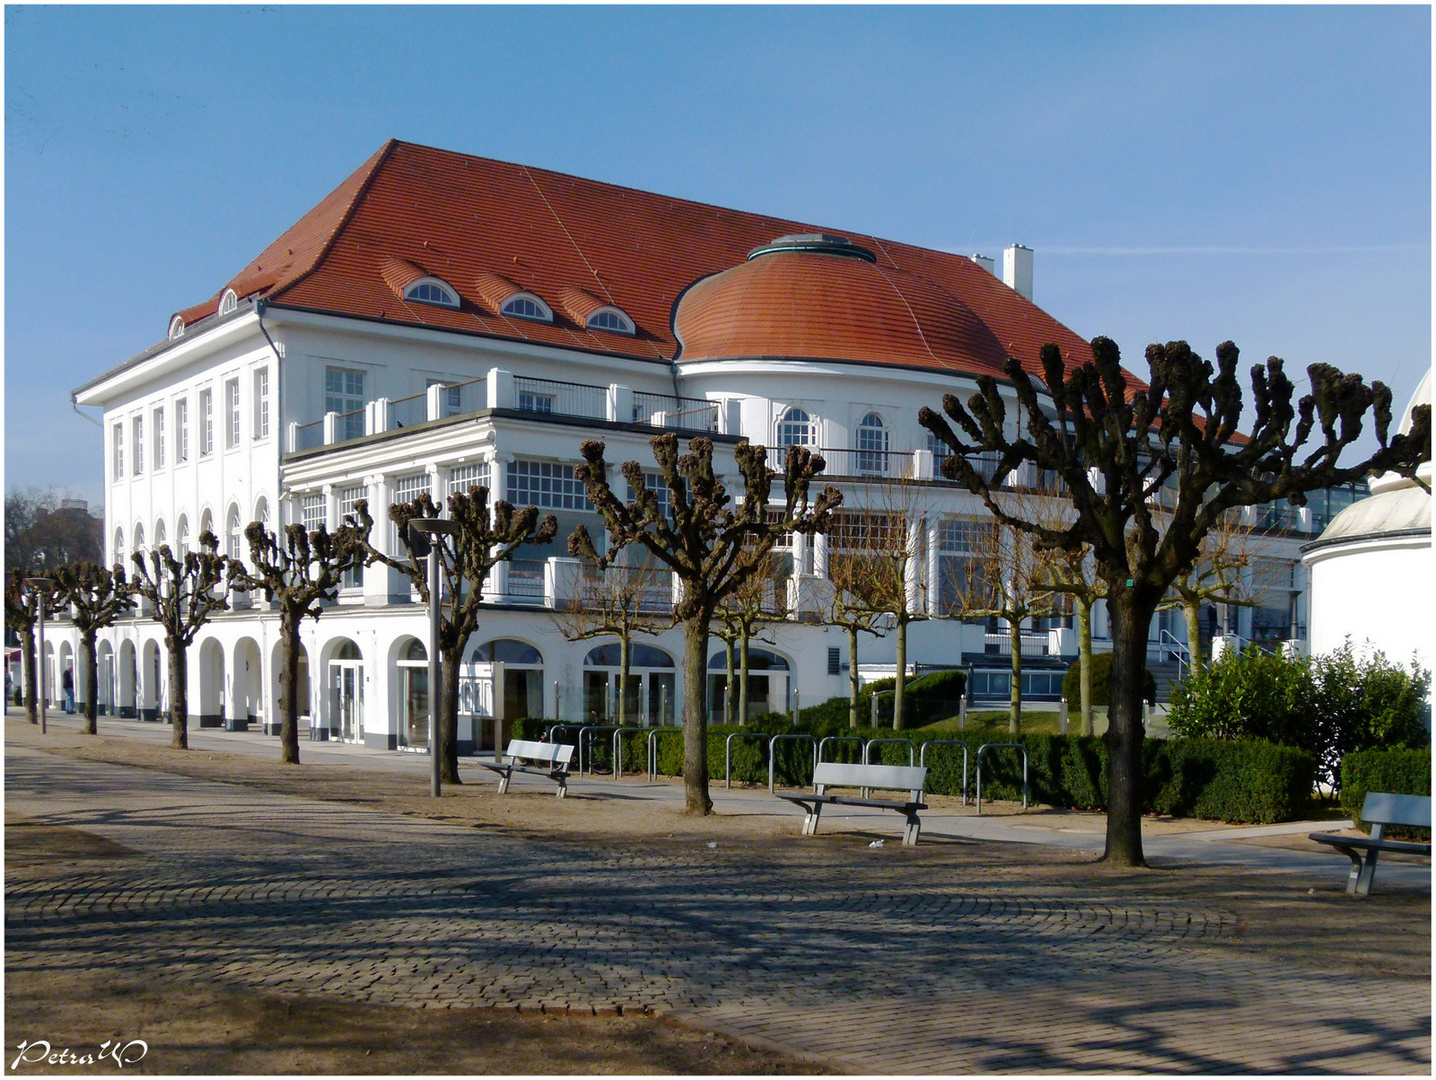 Ehemaliges Casino in Travemünde